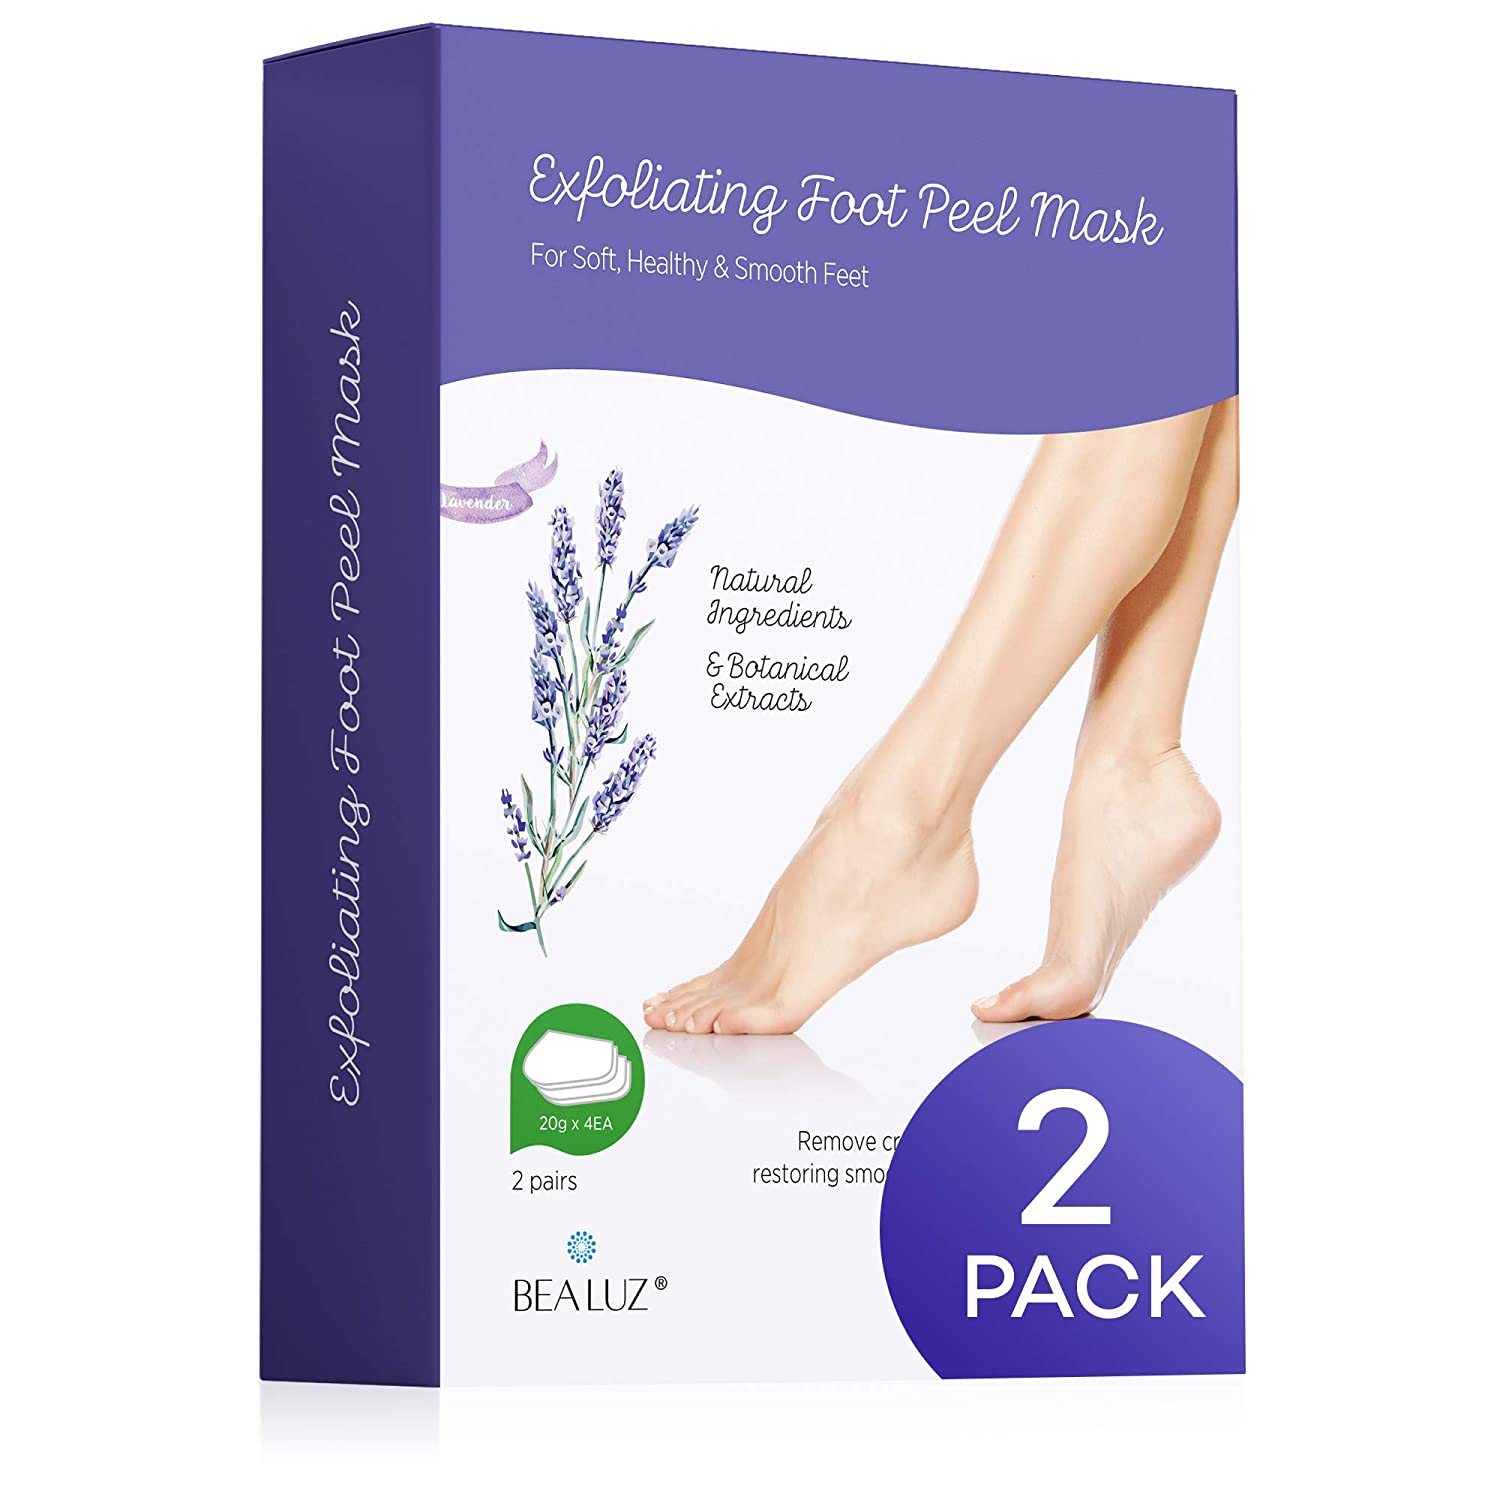 2 Pairs Foot Peel Mask Exfoliant for Soft Feet in 1-2 Weeks, Exfoliating Booties for Peeling Off Calluses & Dead Skin, For Men & Women Lavender by Bea Luz - outoff